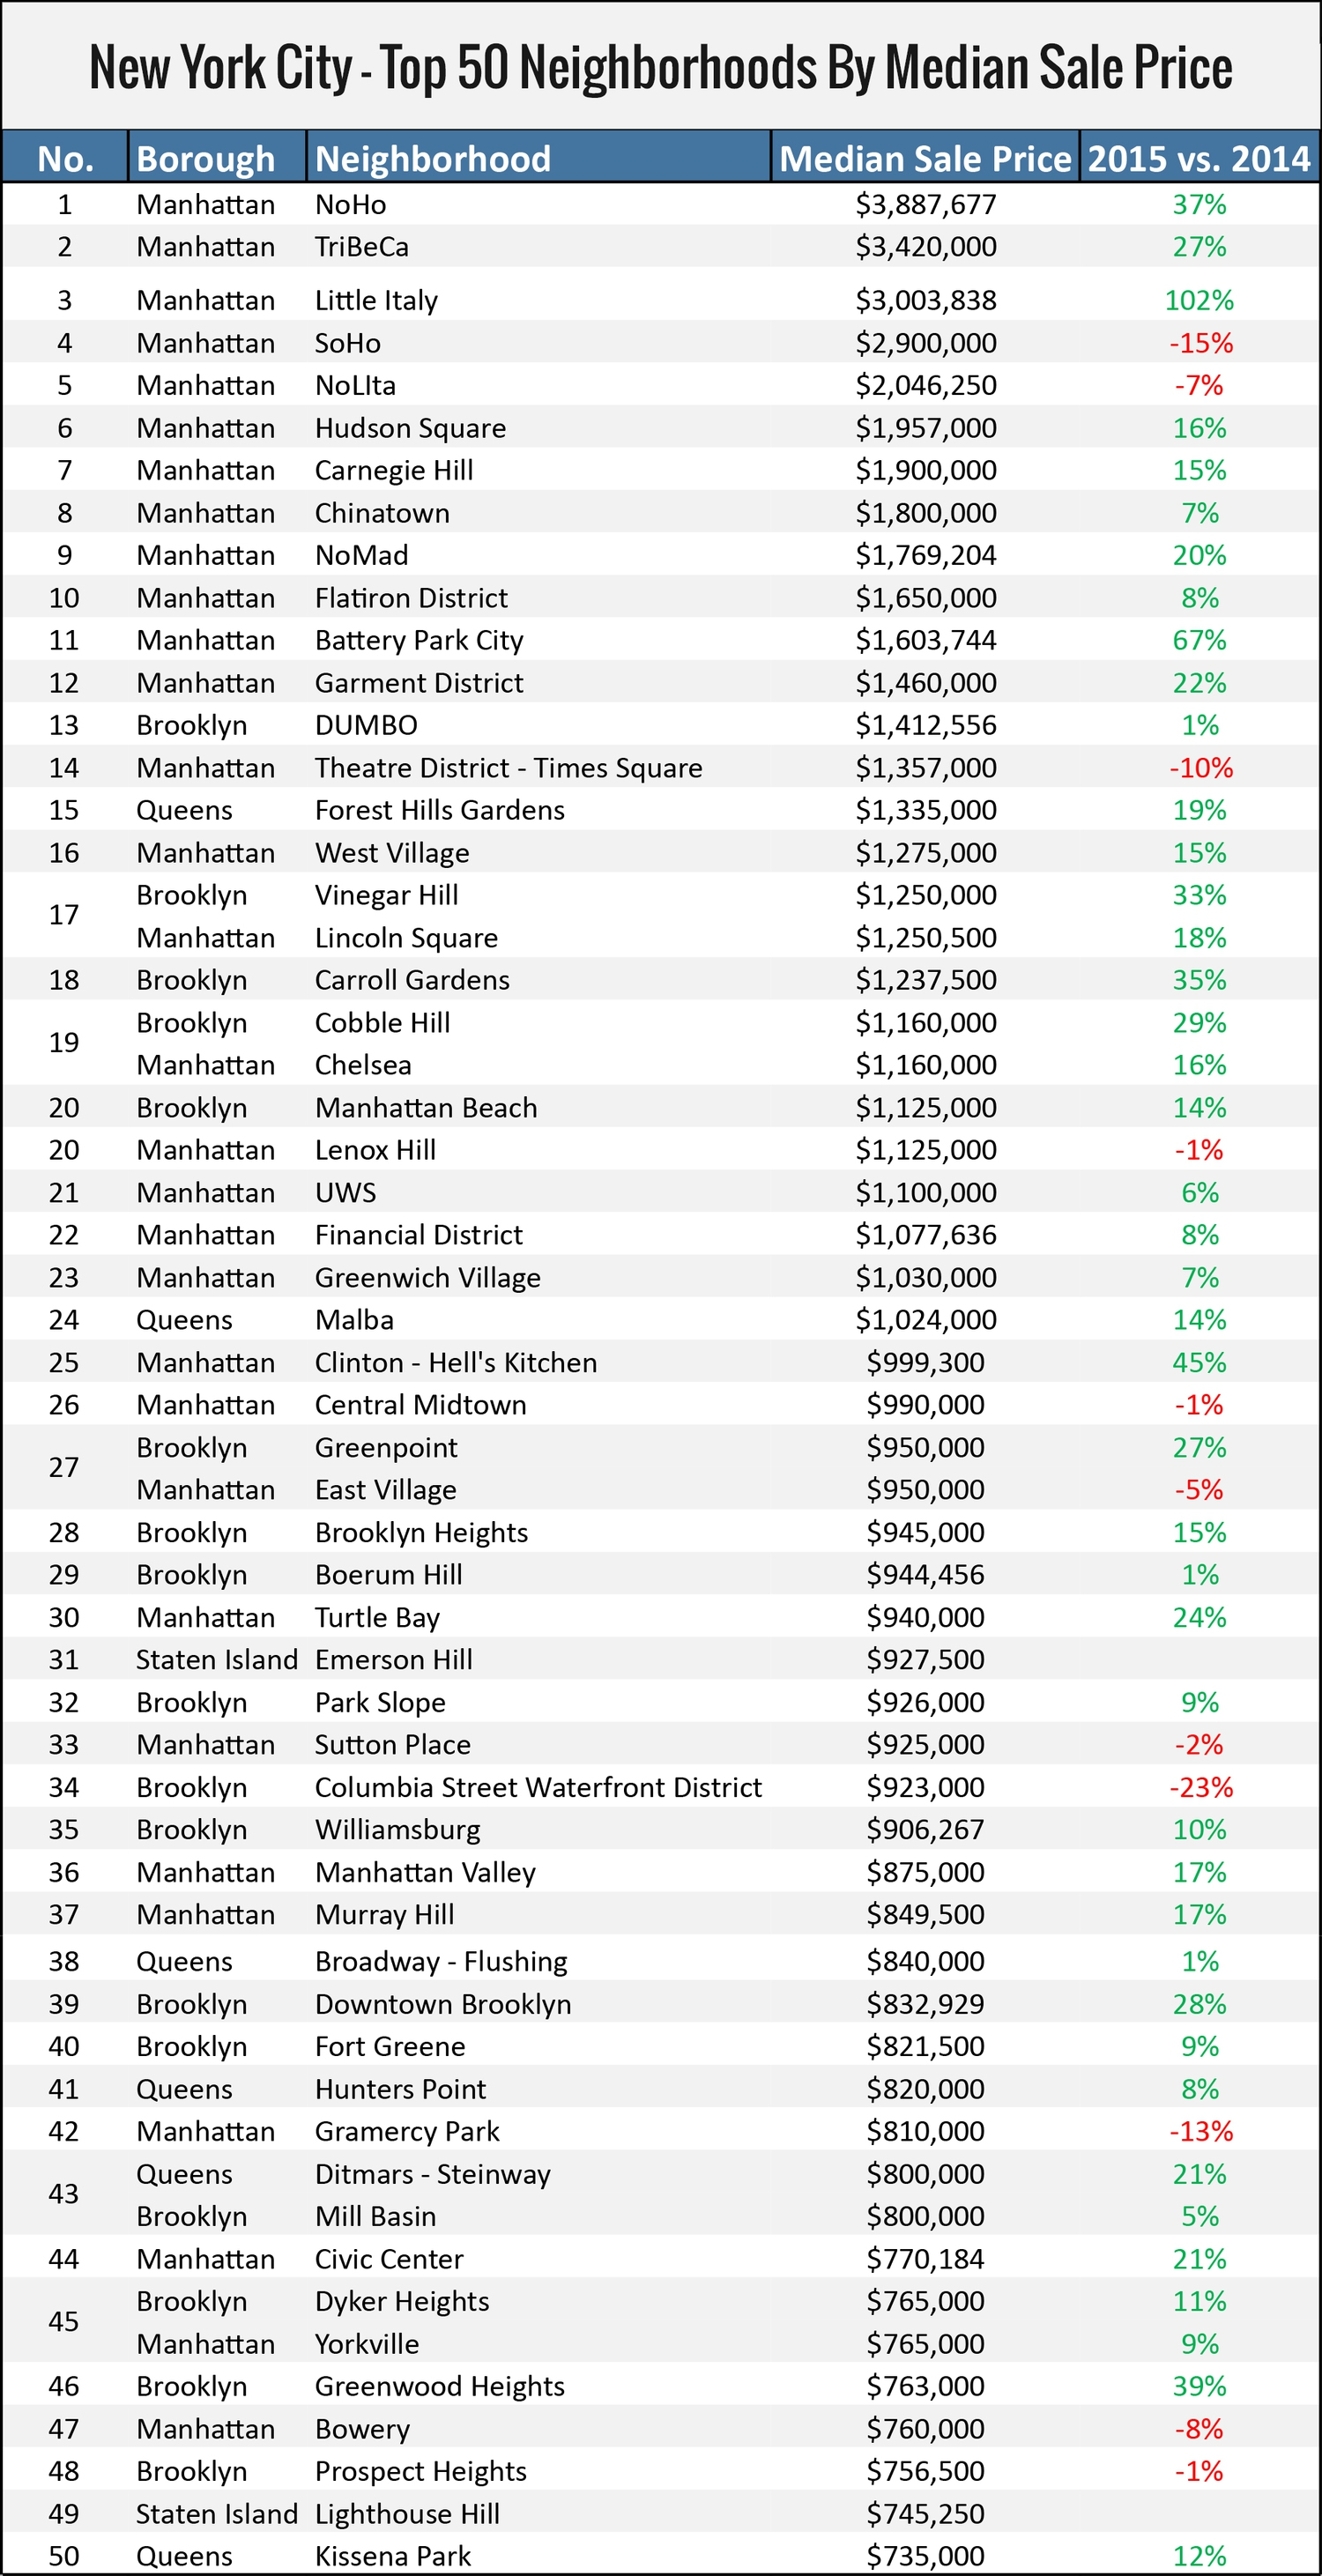 NYC's Top 50 Priciest Neighborhoods by Median Sale Price in 2015